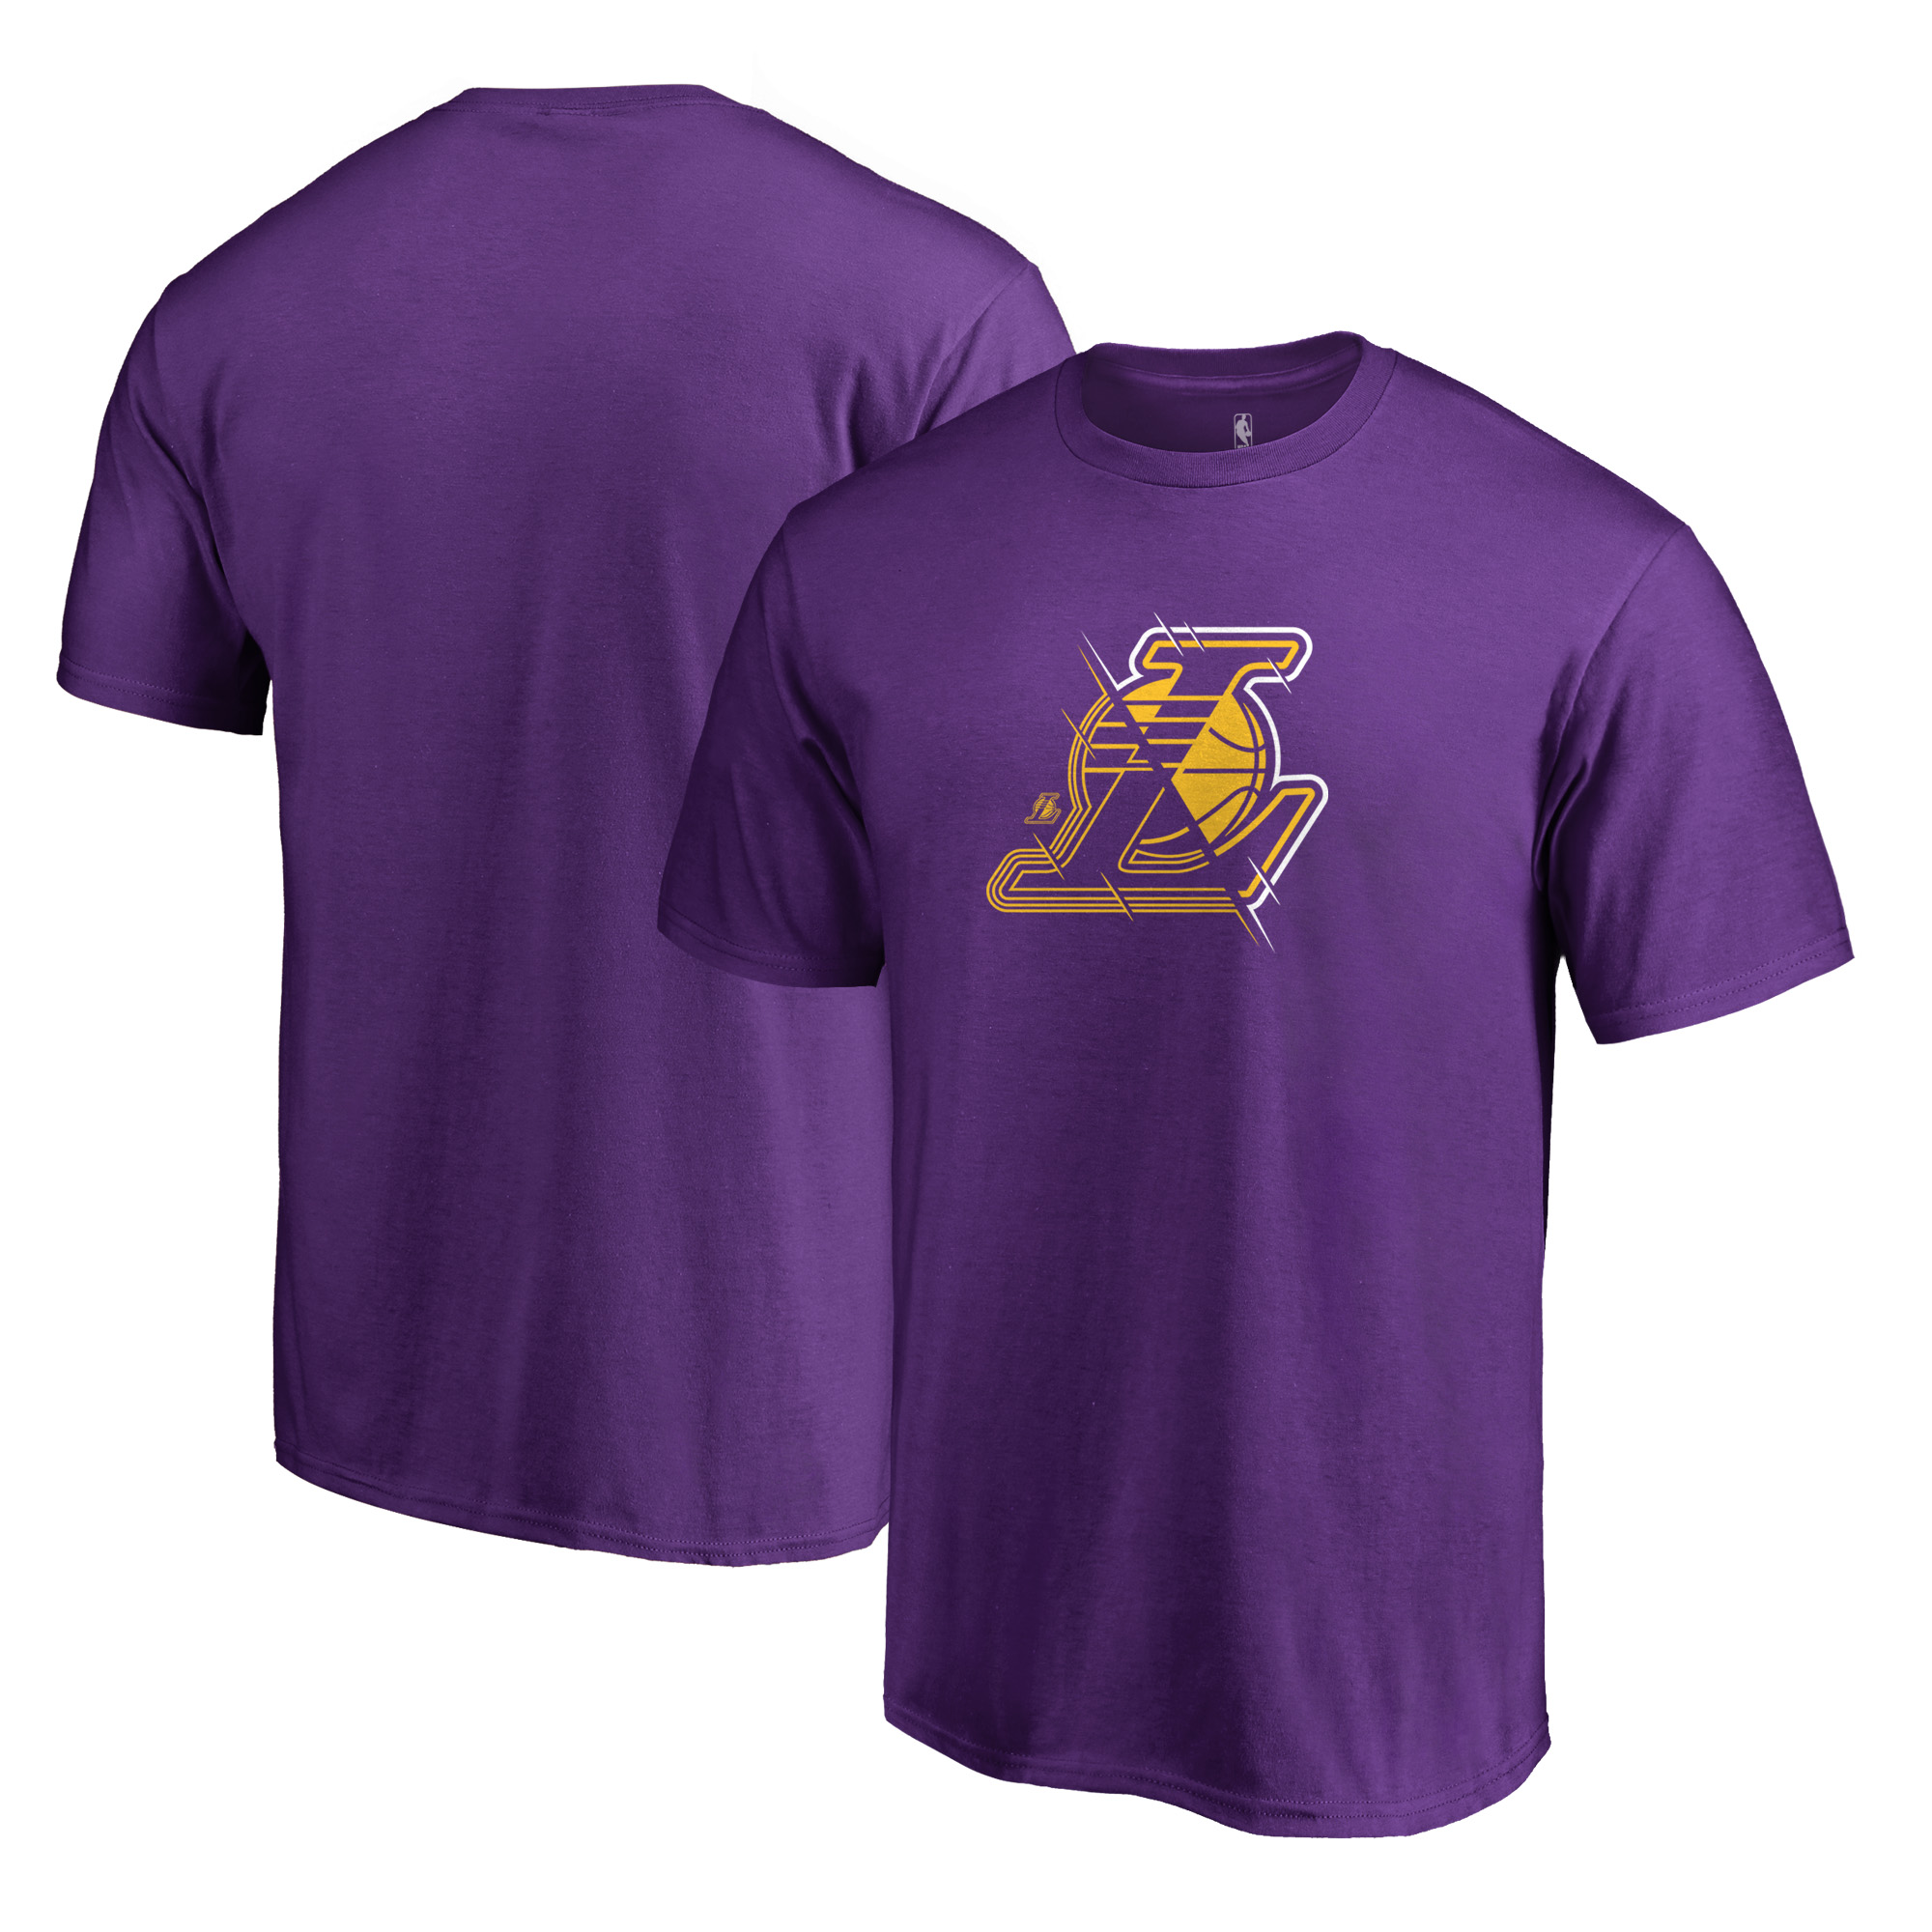 Los Angeles Lakers Fanatics Branded X-Ray Big and Tall T-Shirt - Purple